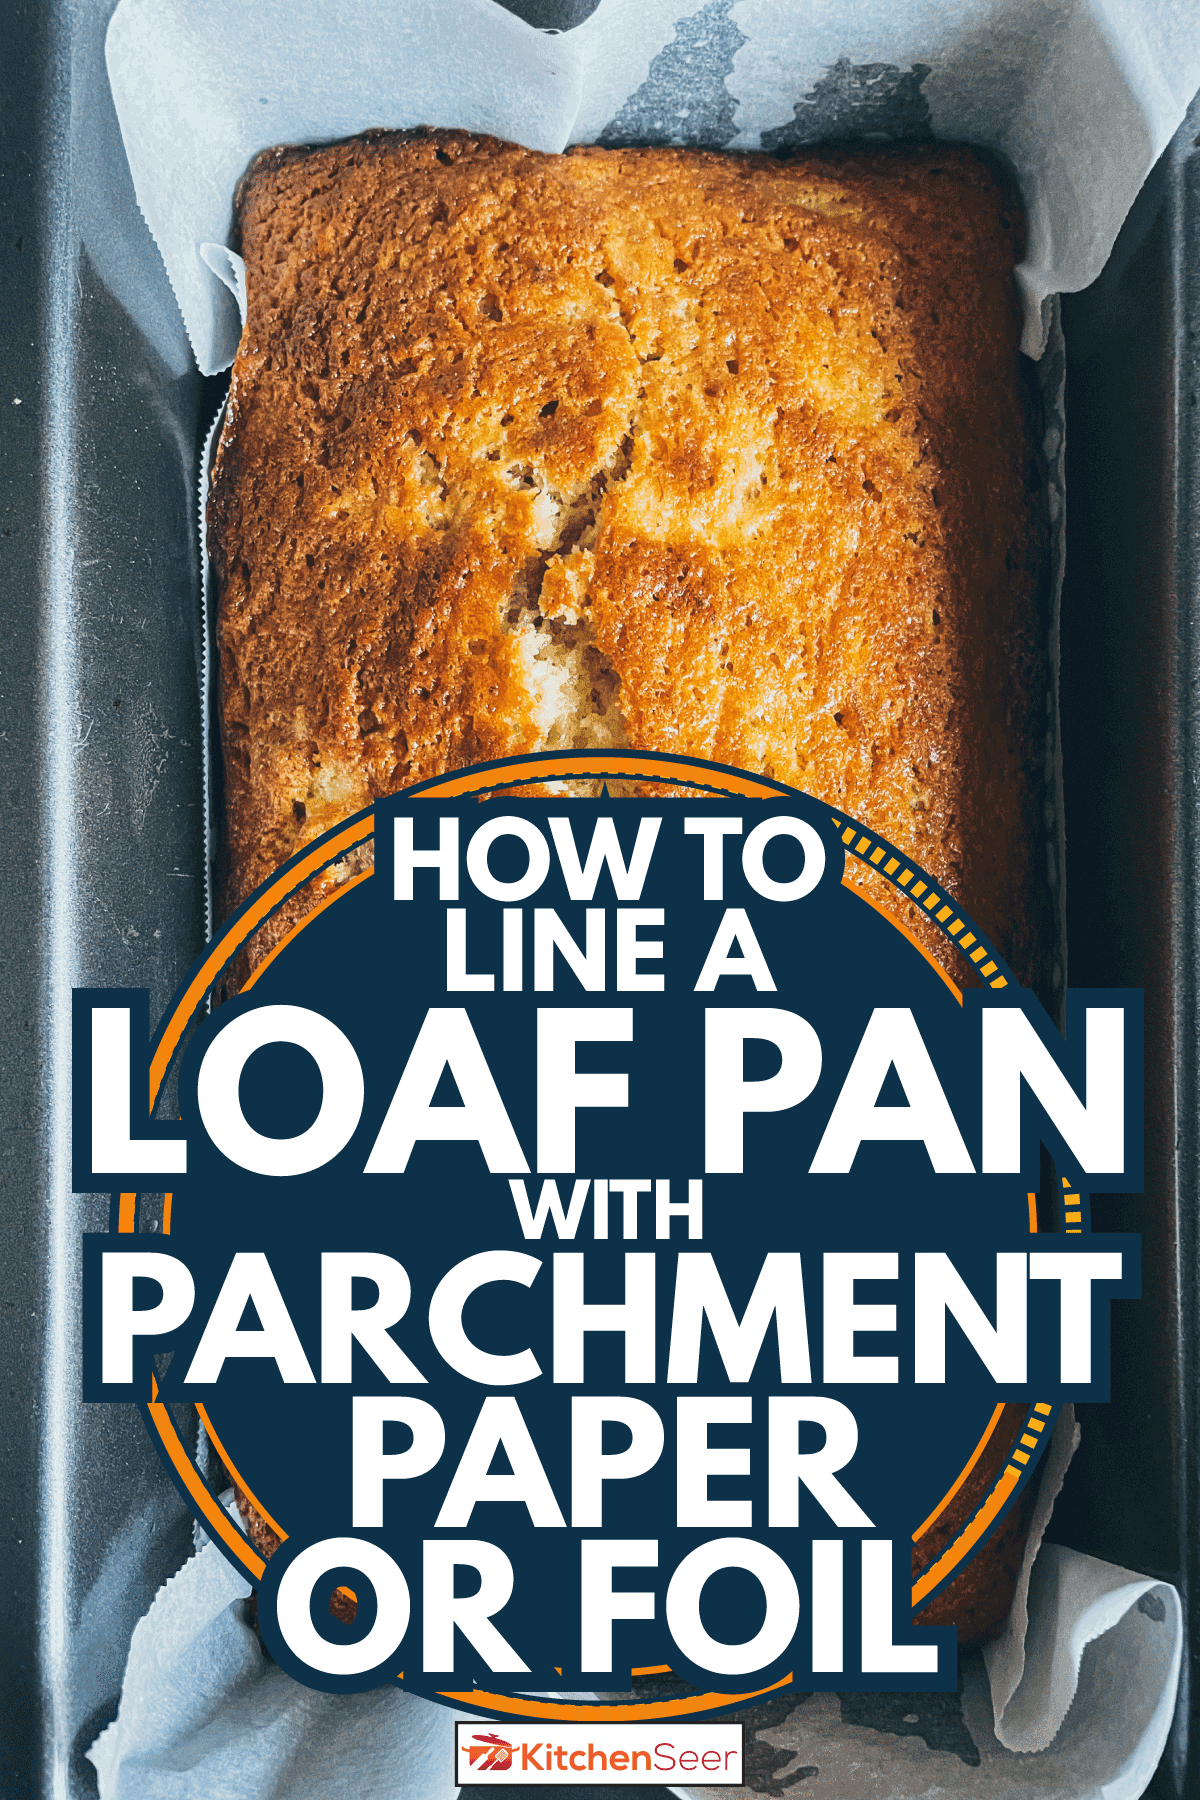 Homemade banana loaf just out from the oven. How To Line A Loaf Pan With Parchment Paper Or Foil